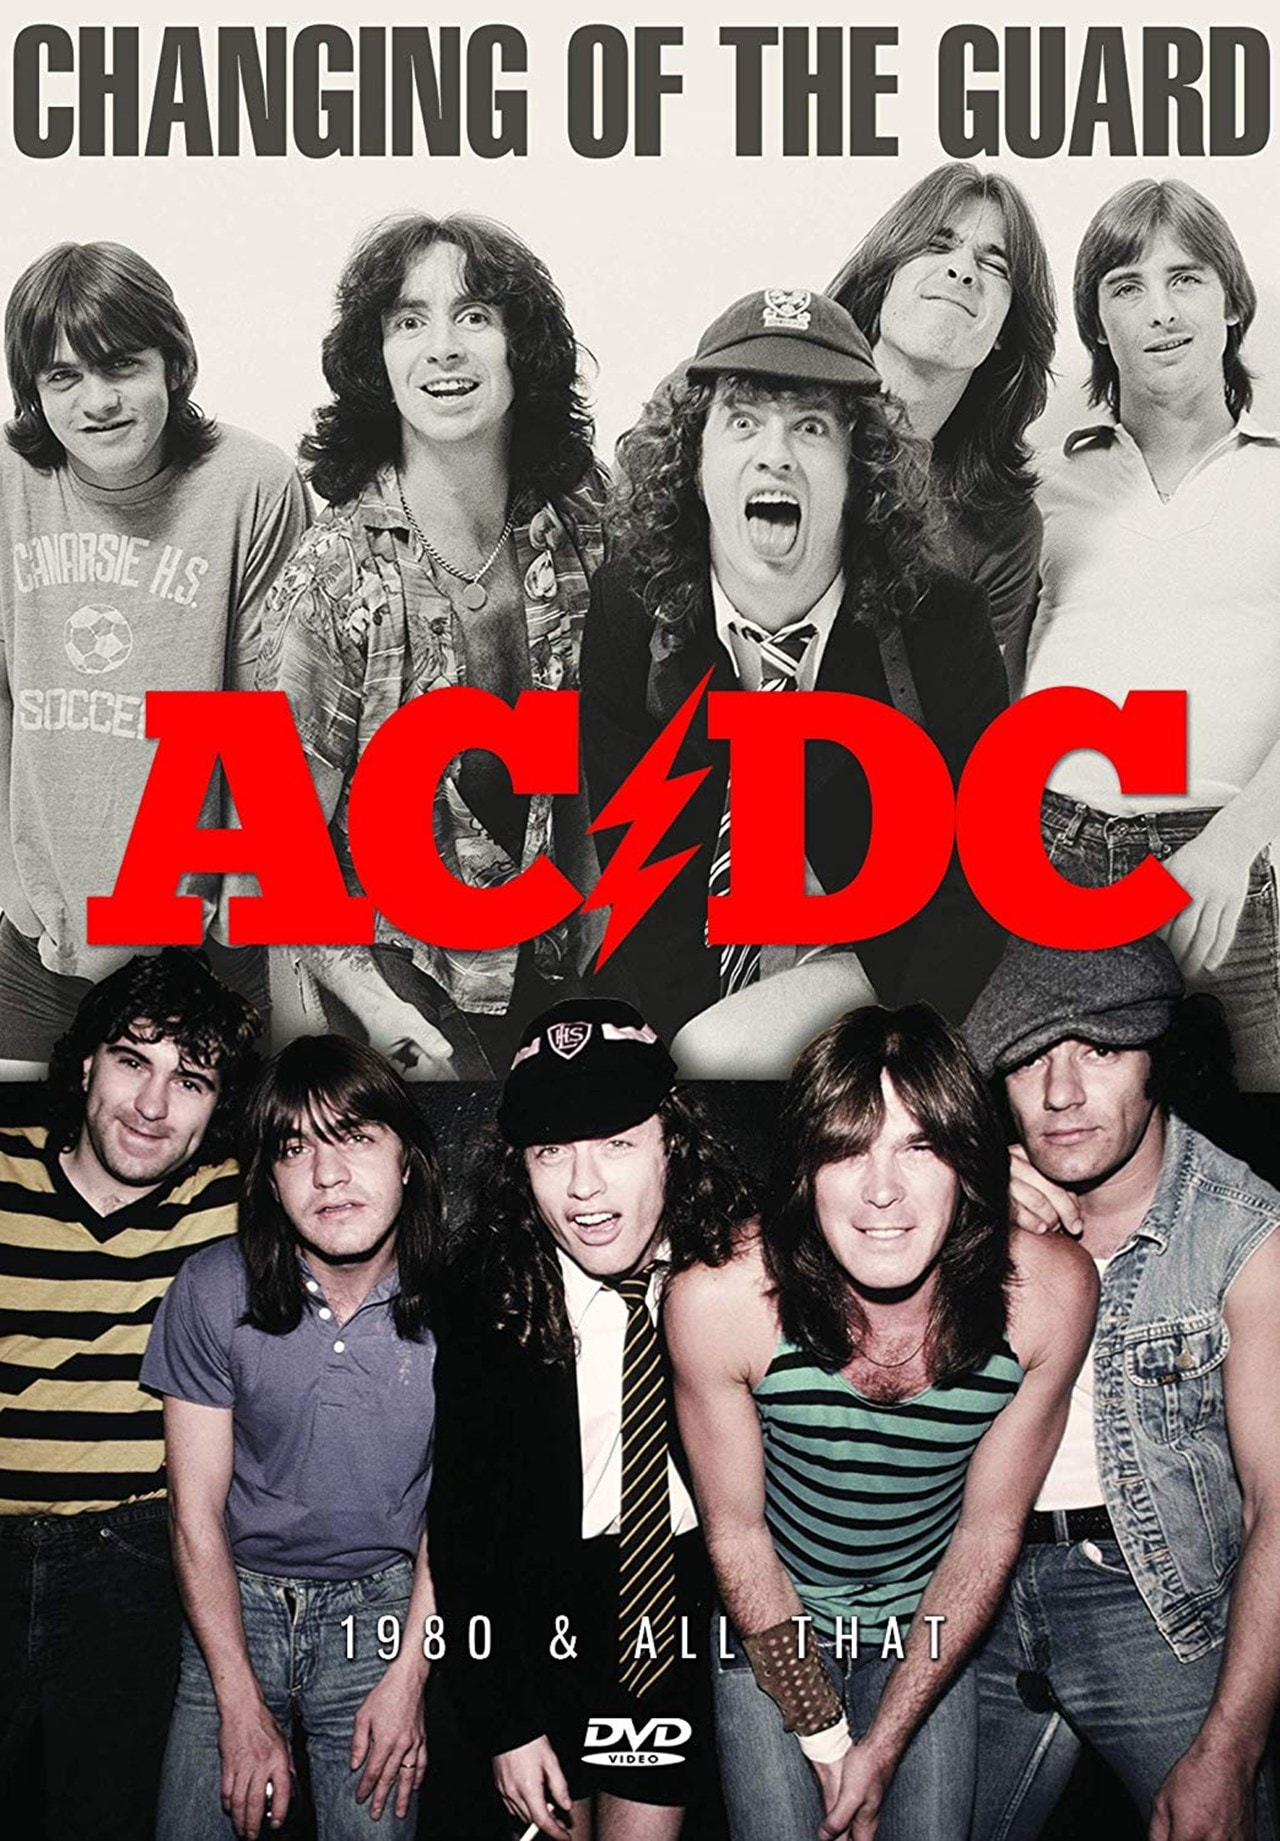 AC/DC: Changing of the Guard - 1